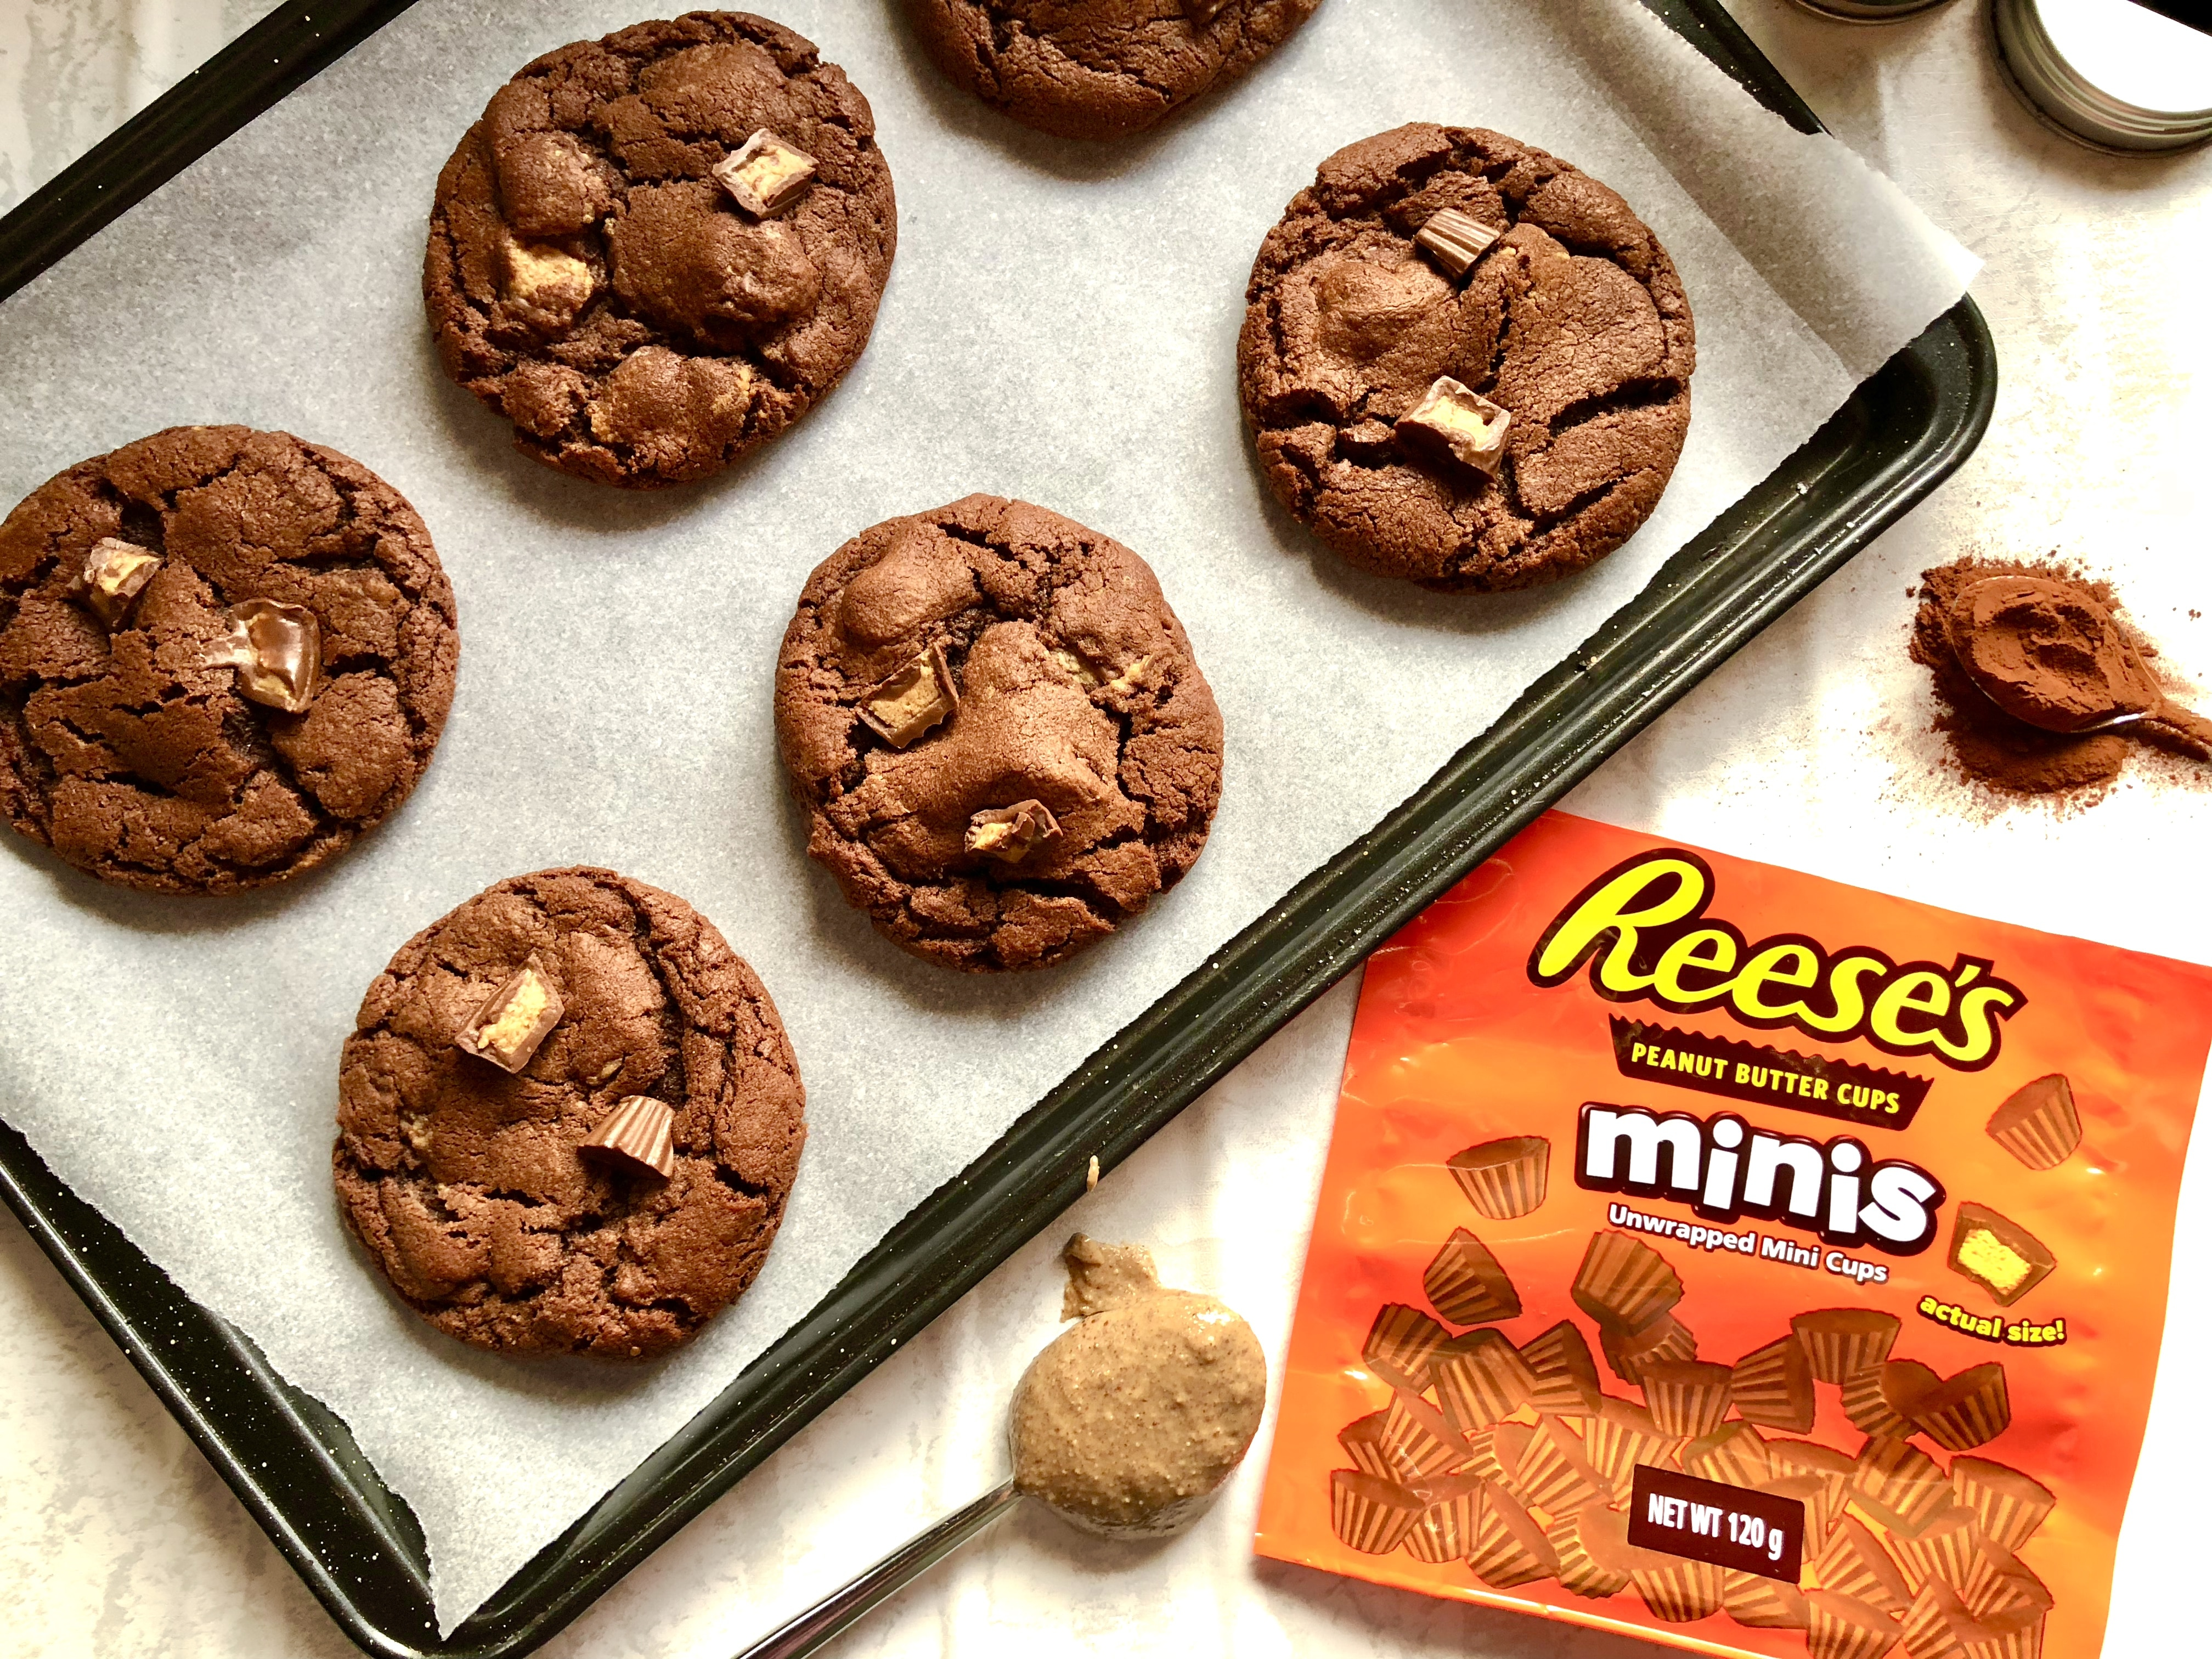 reese's chocolate peanut butter cup cookies